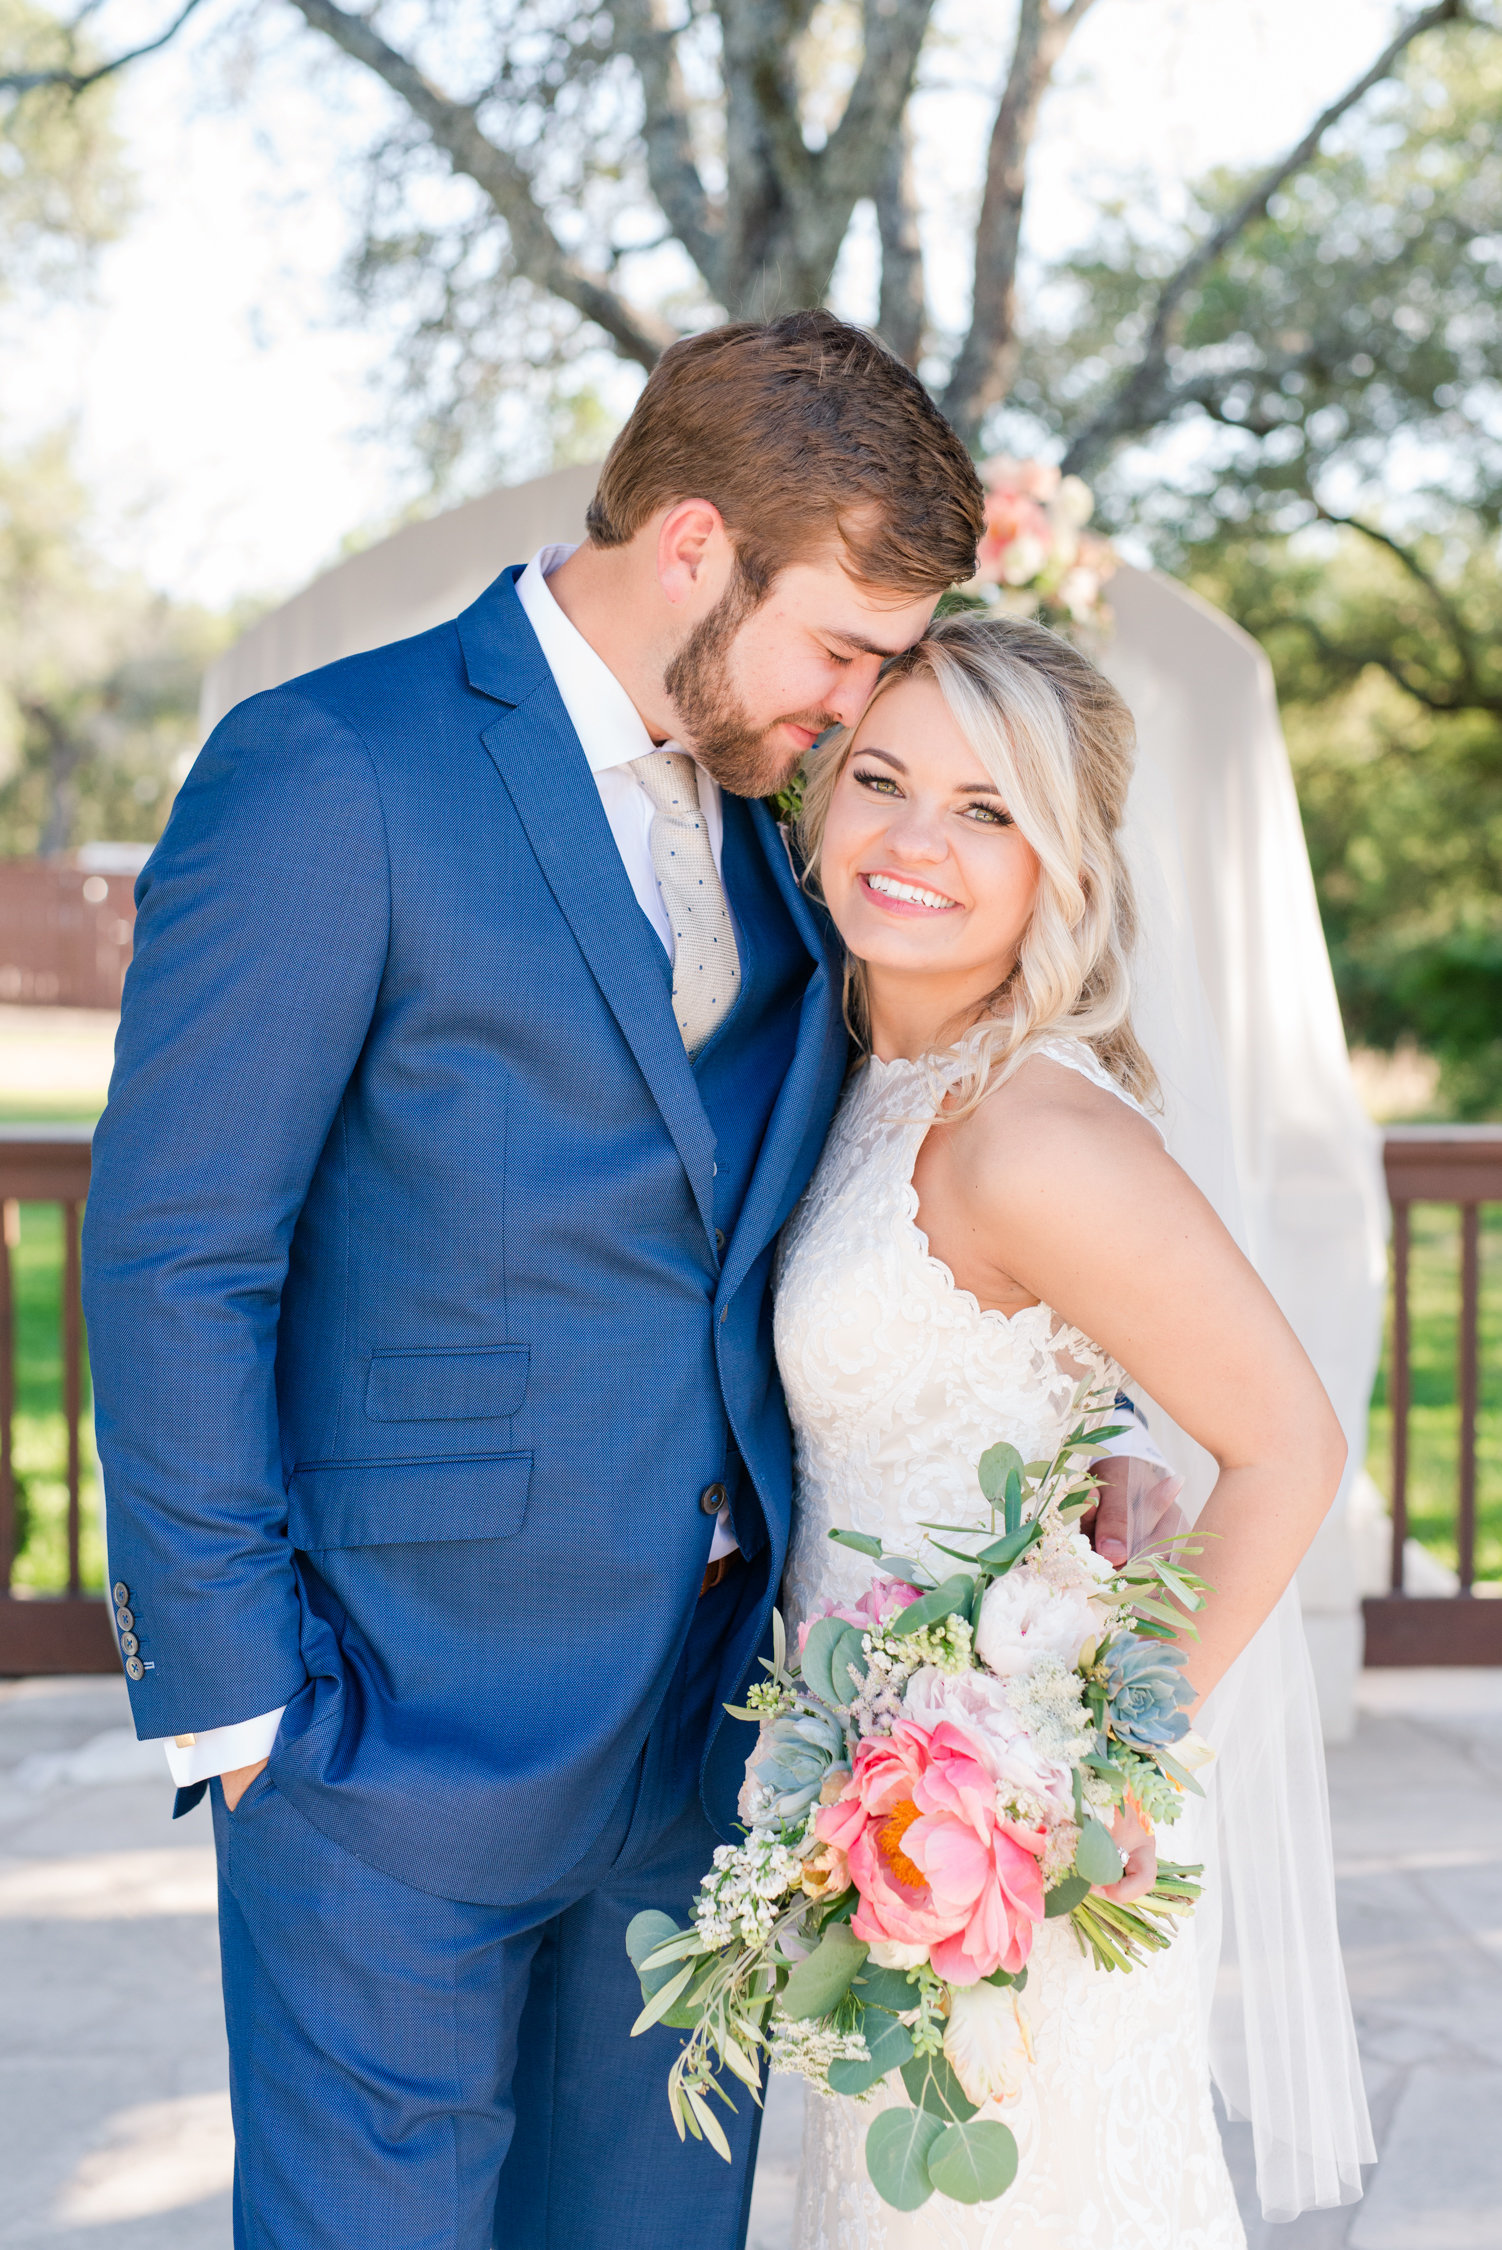 Wedding Photographer for The Springs in Georgetown: Bride smiles at camera holding pink bouquet as groom kisses her temple